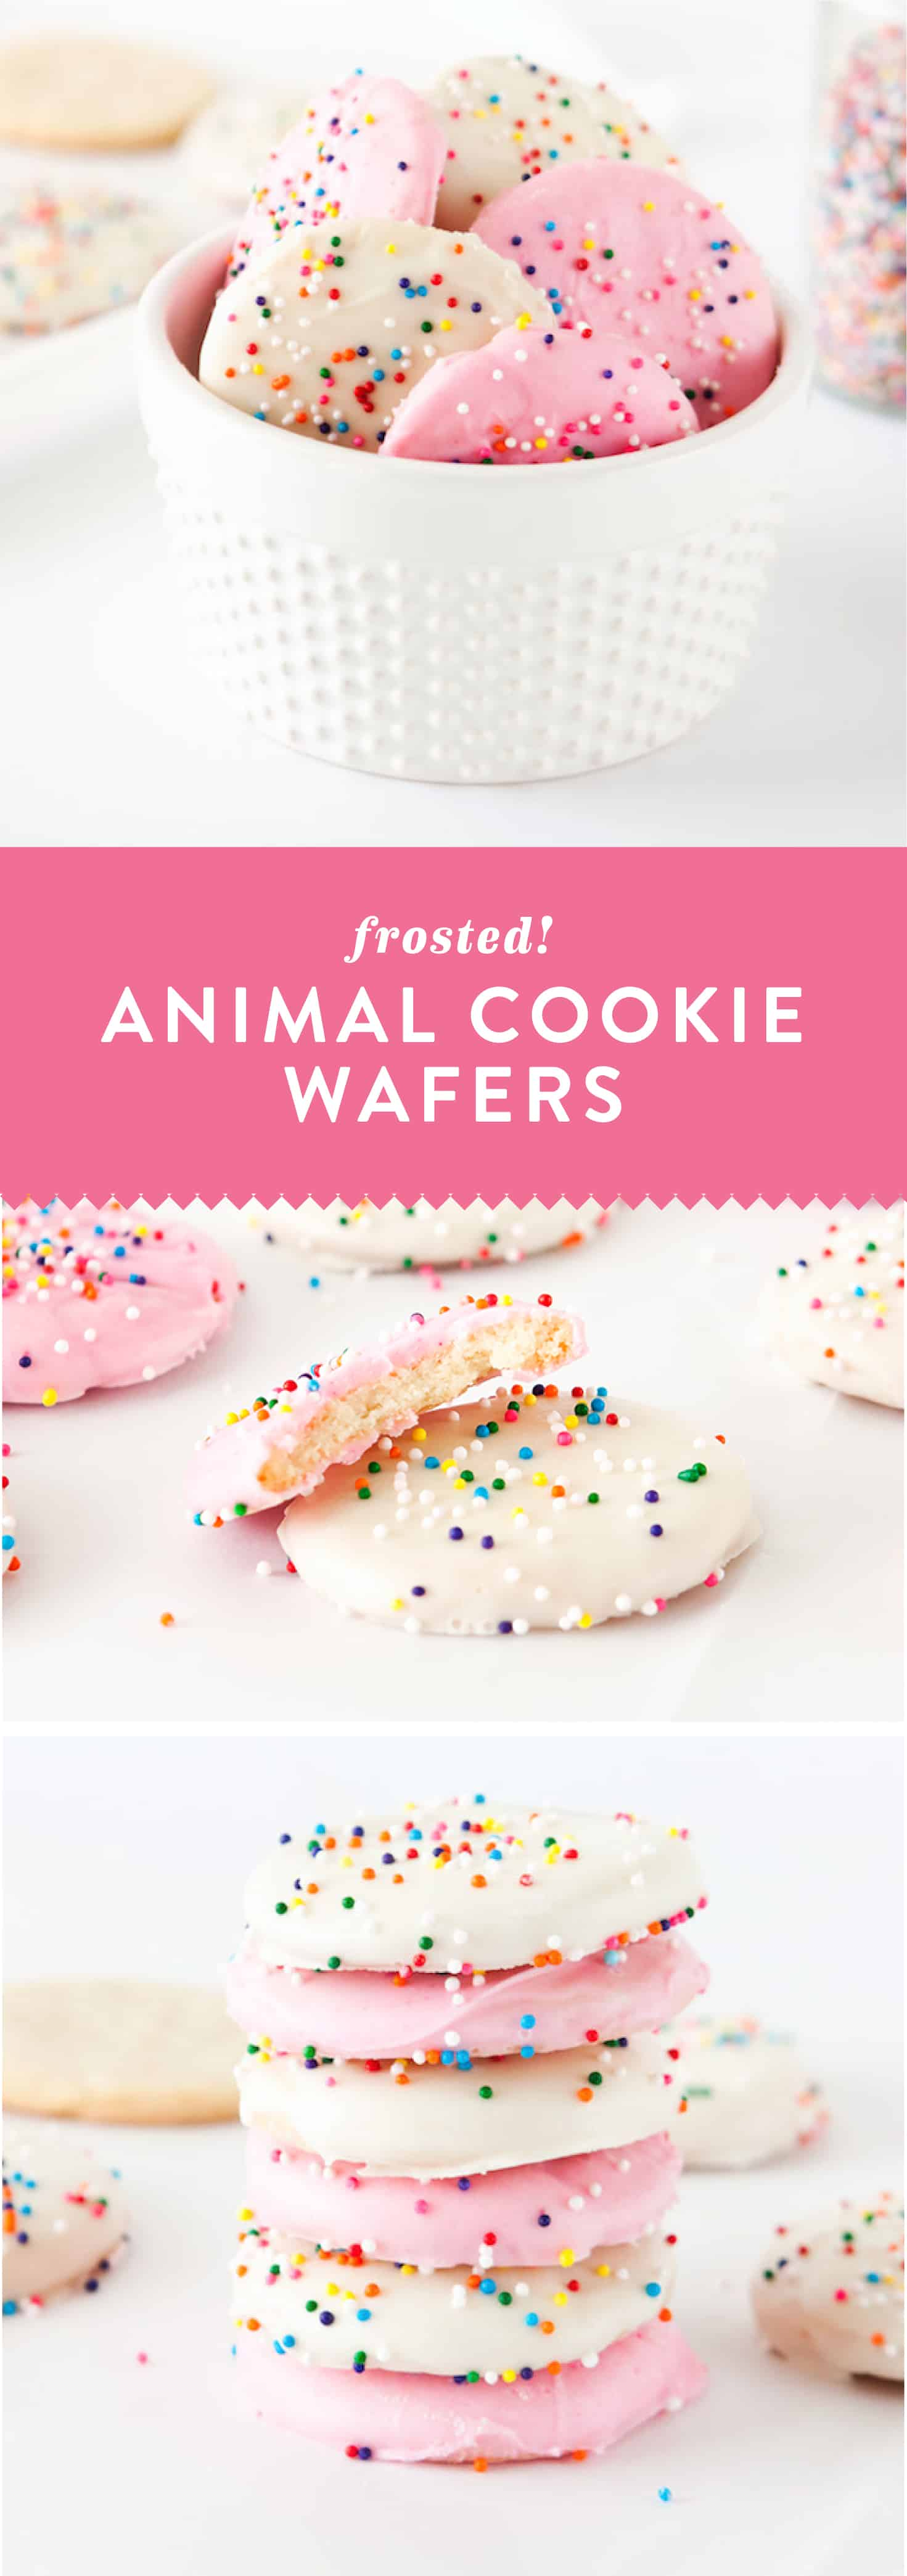 Homemade Frosted Animal Cookie Wafers